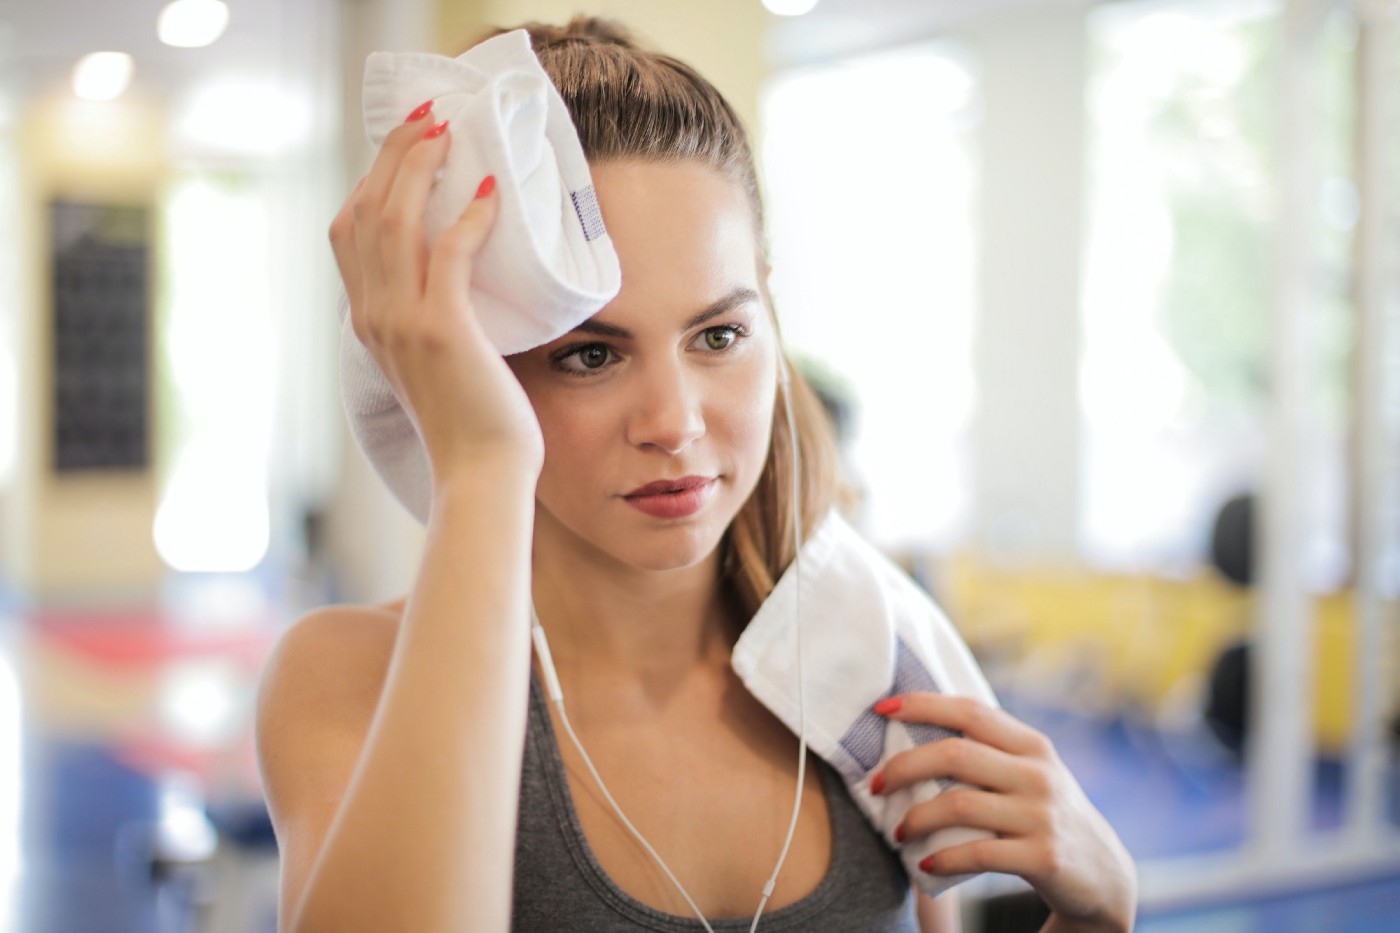 Young woman at the gym wiping her forehead with a small towel.